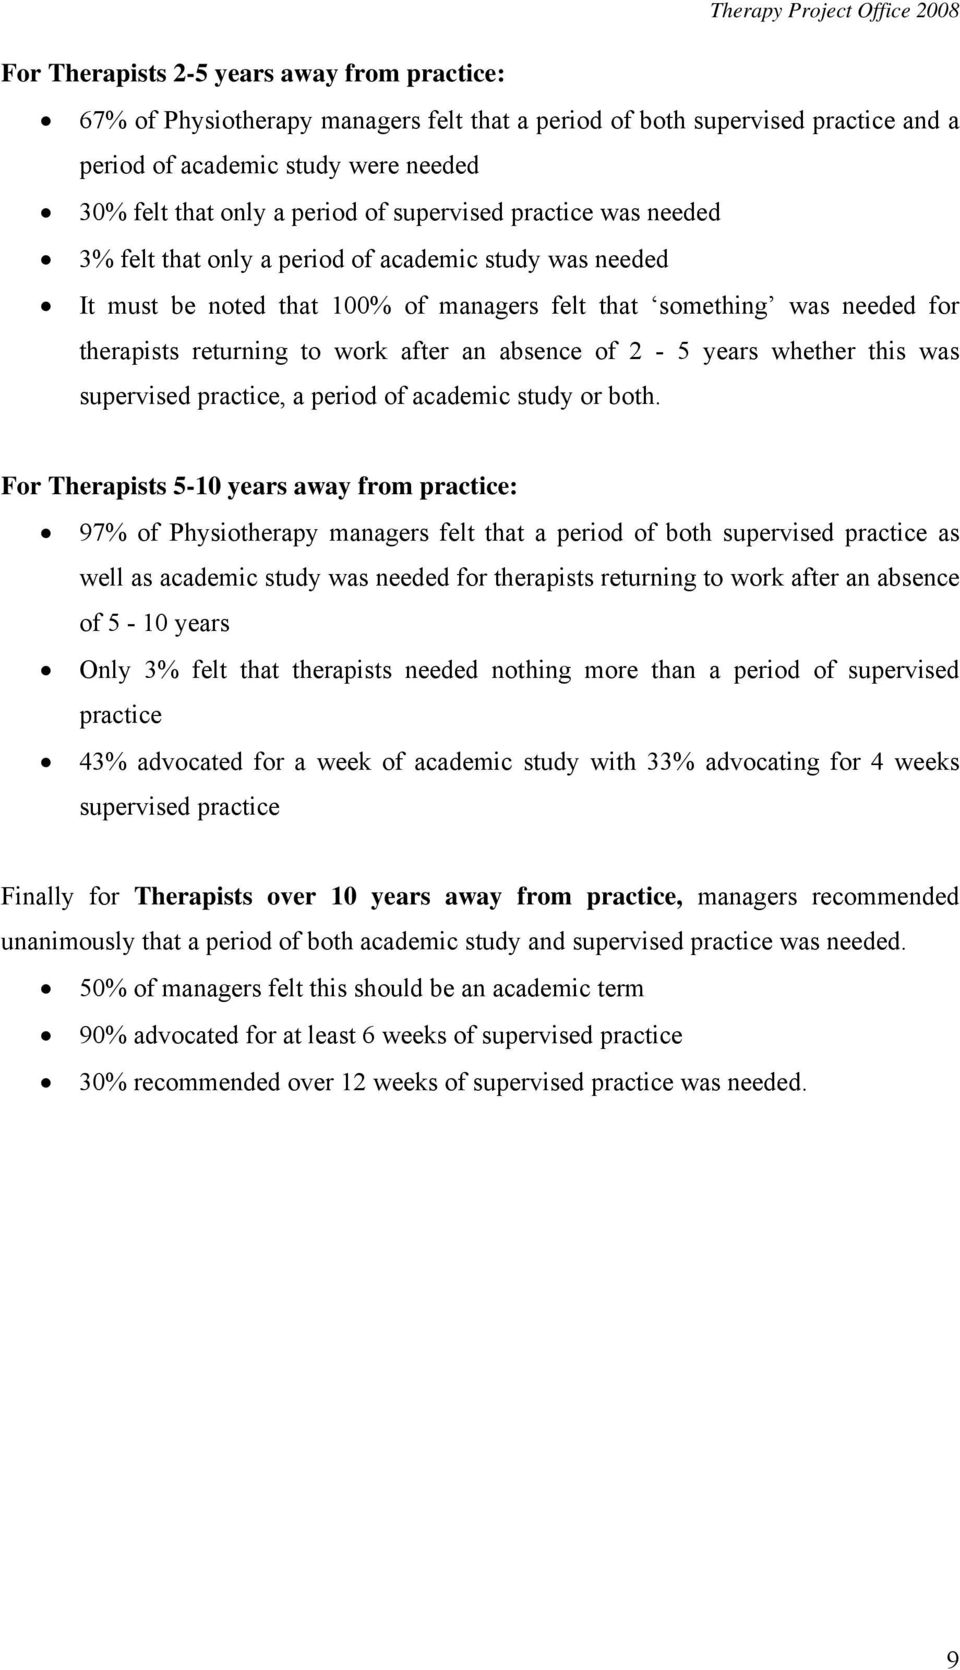 absence of 2-5 years whether this was supervised practice, a period of academic study or both.